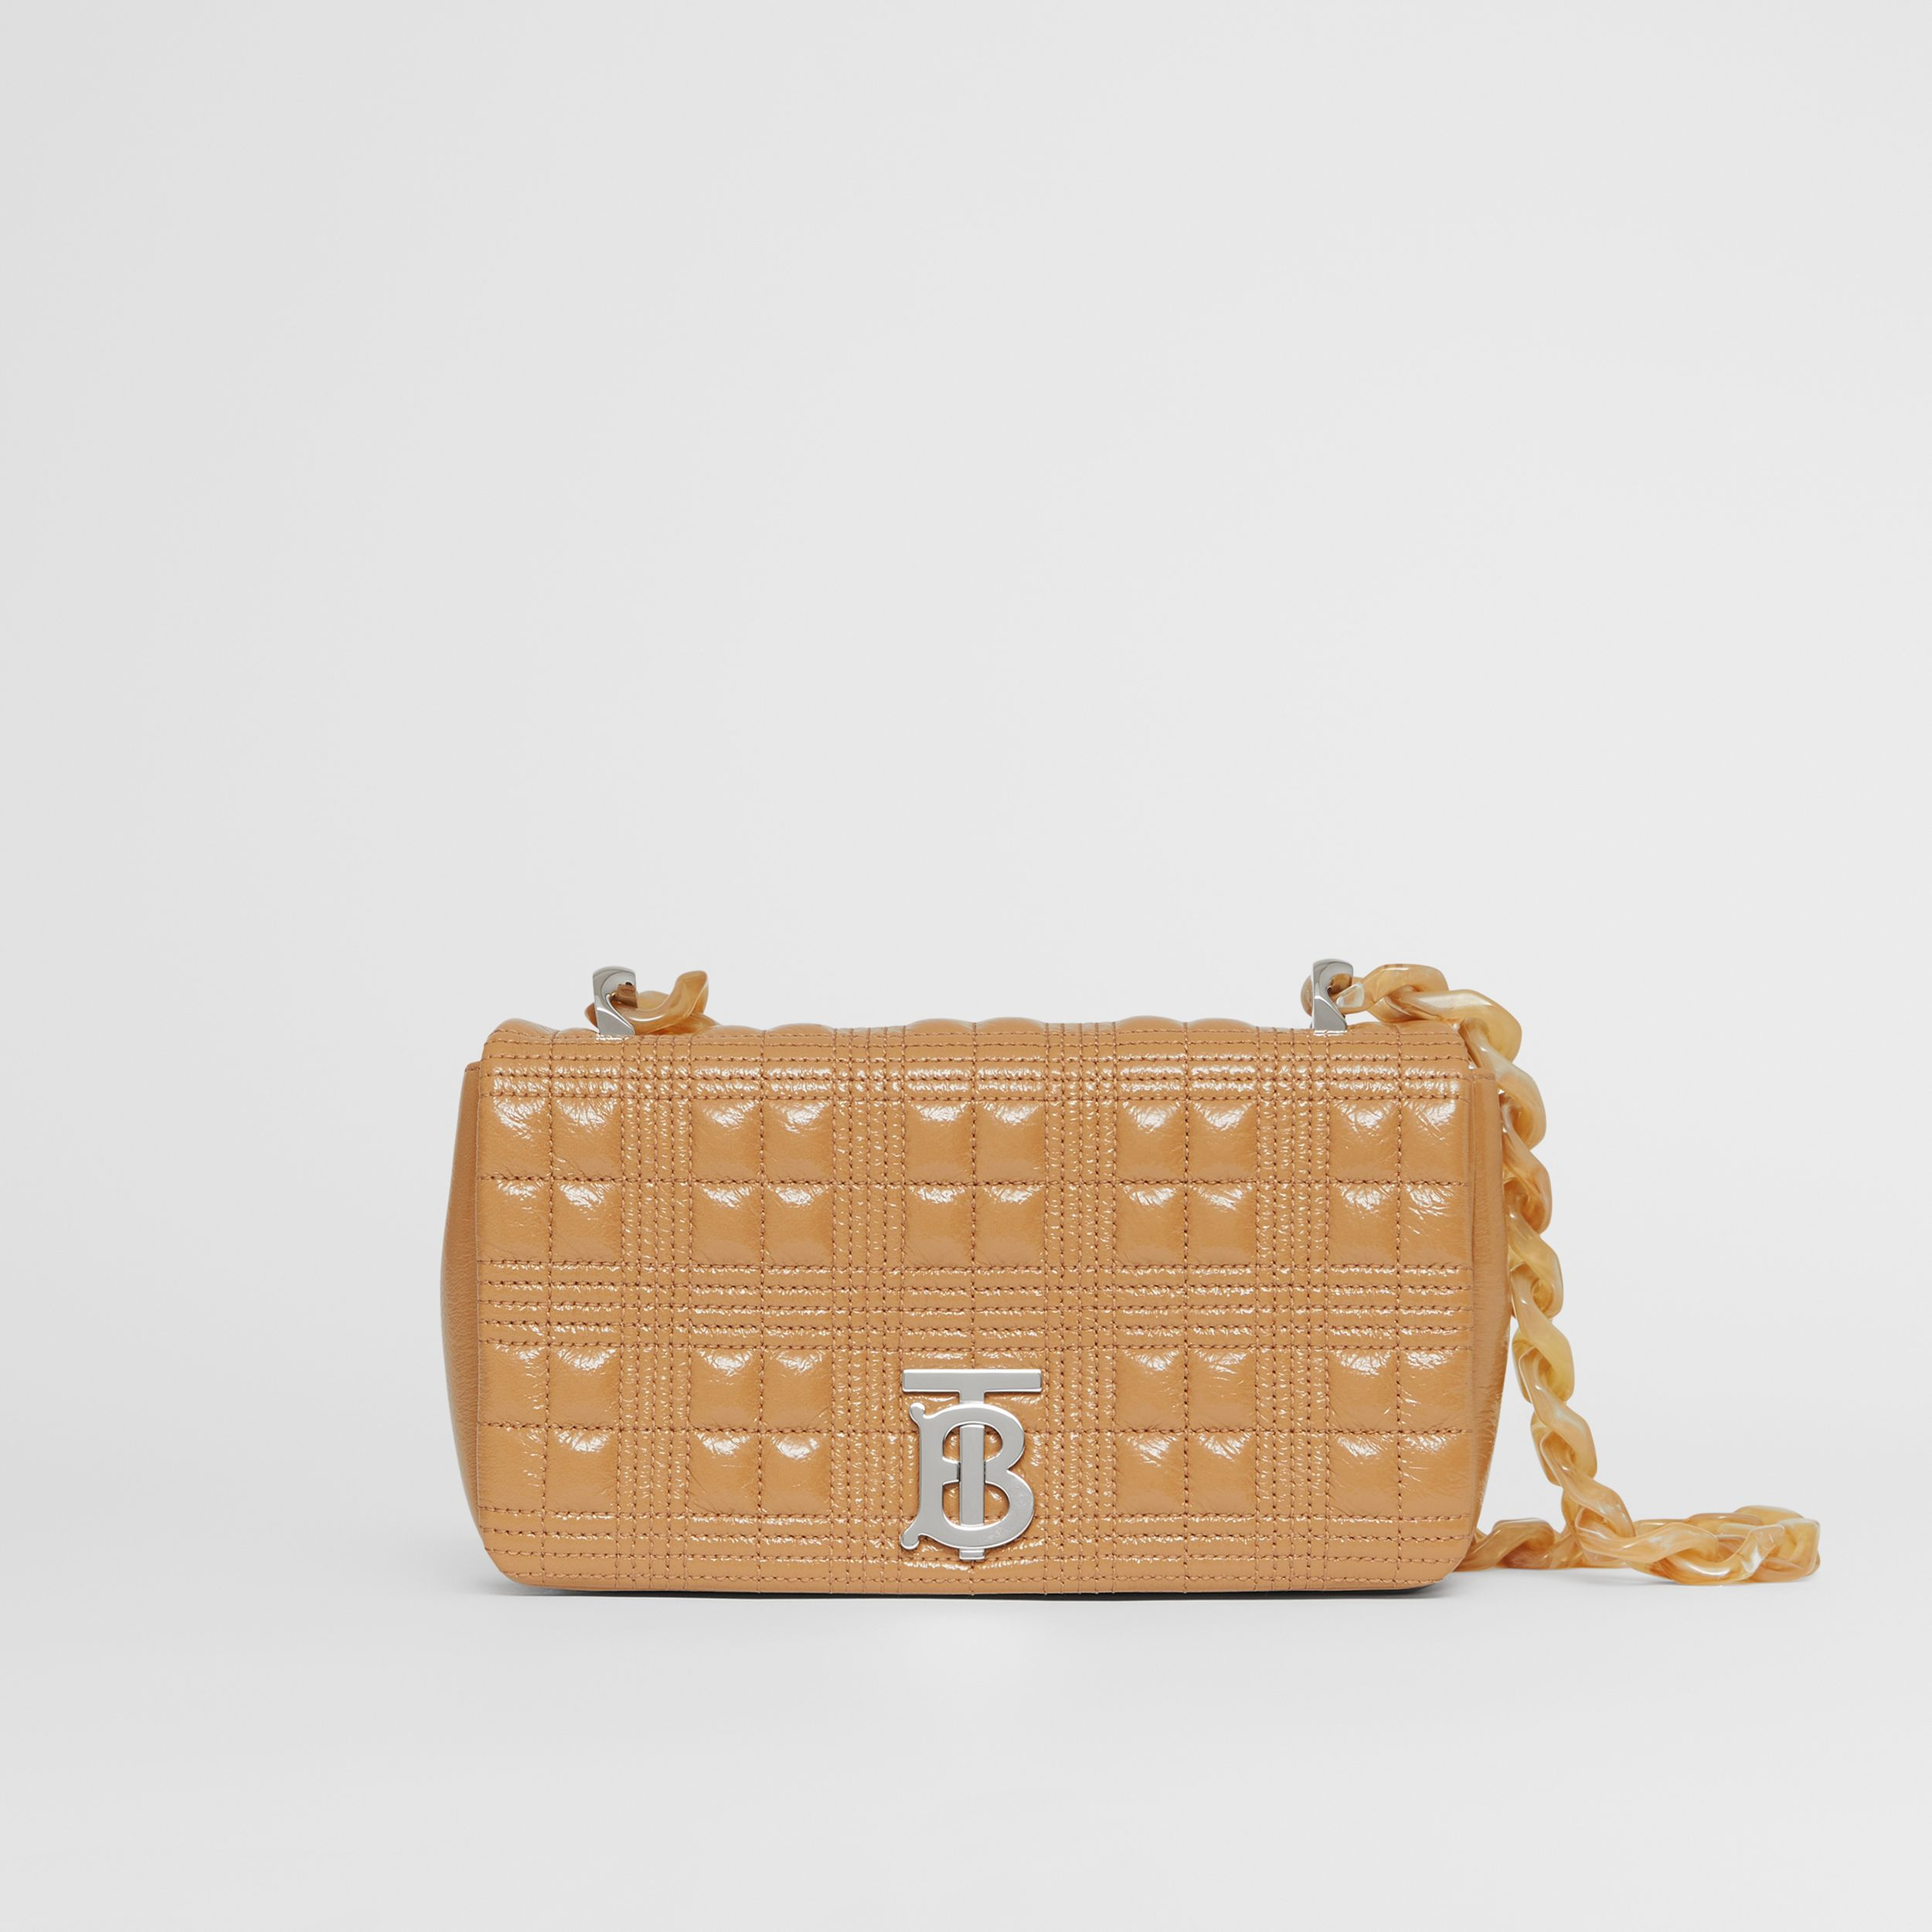 Small Quilted Lambskin Lola Bag in Camel - Women | Burberry United Kingdom - 4